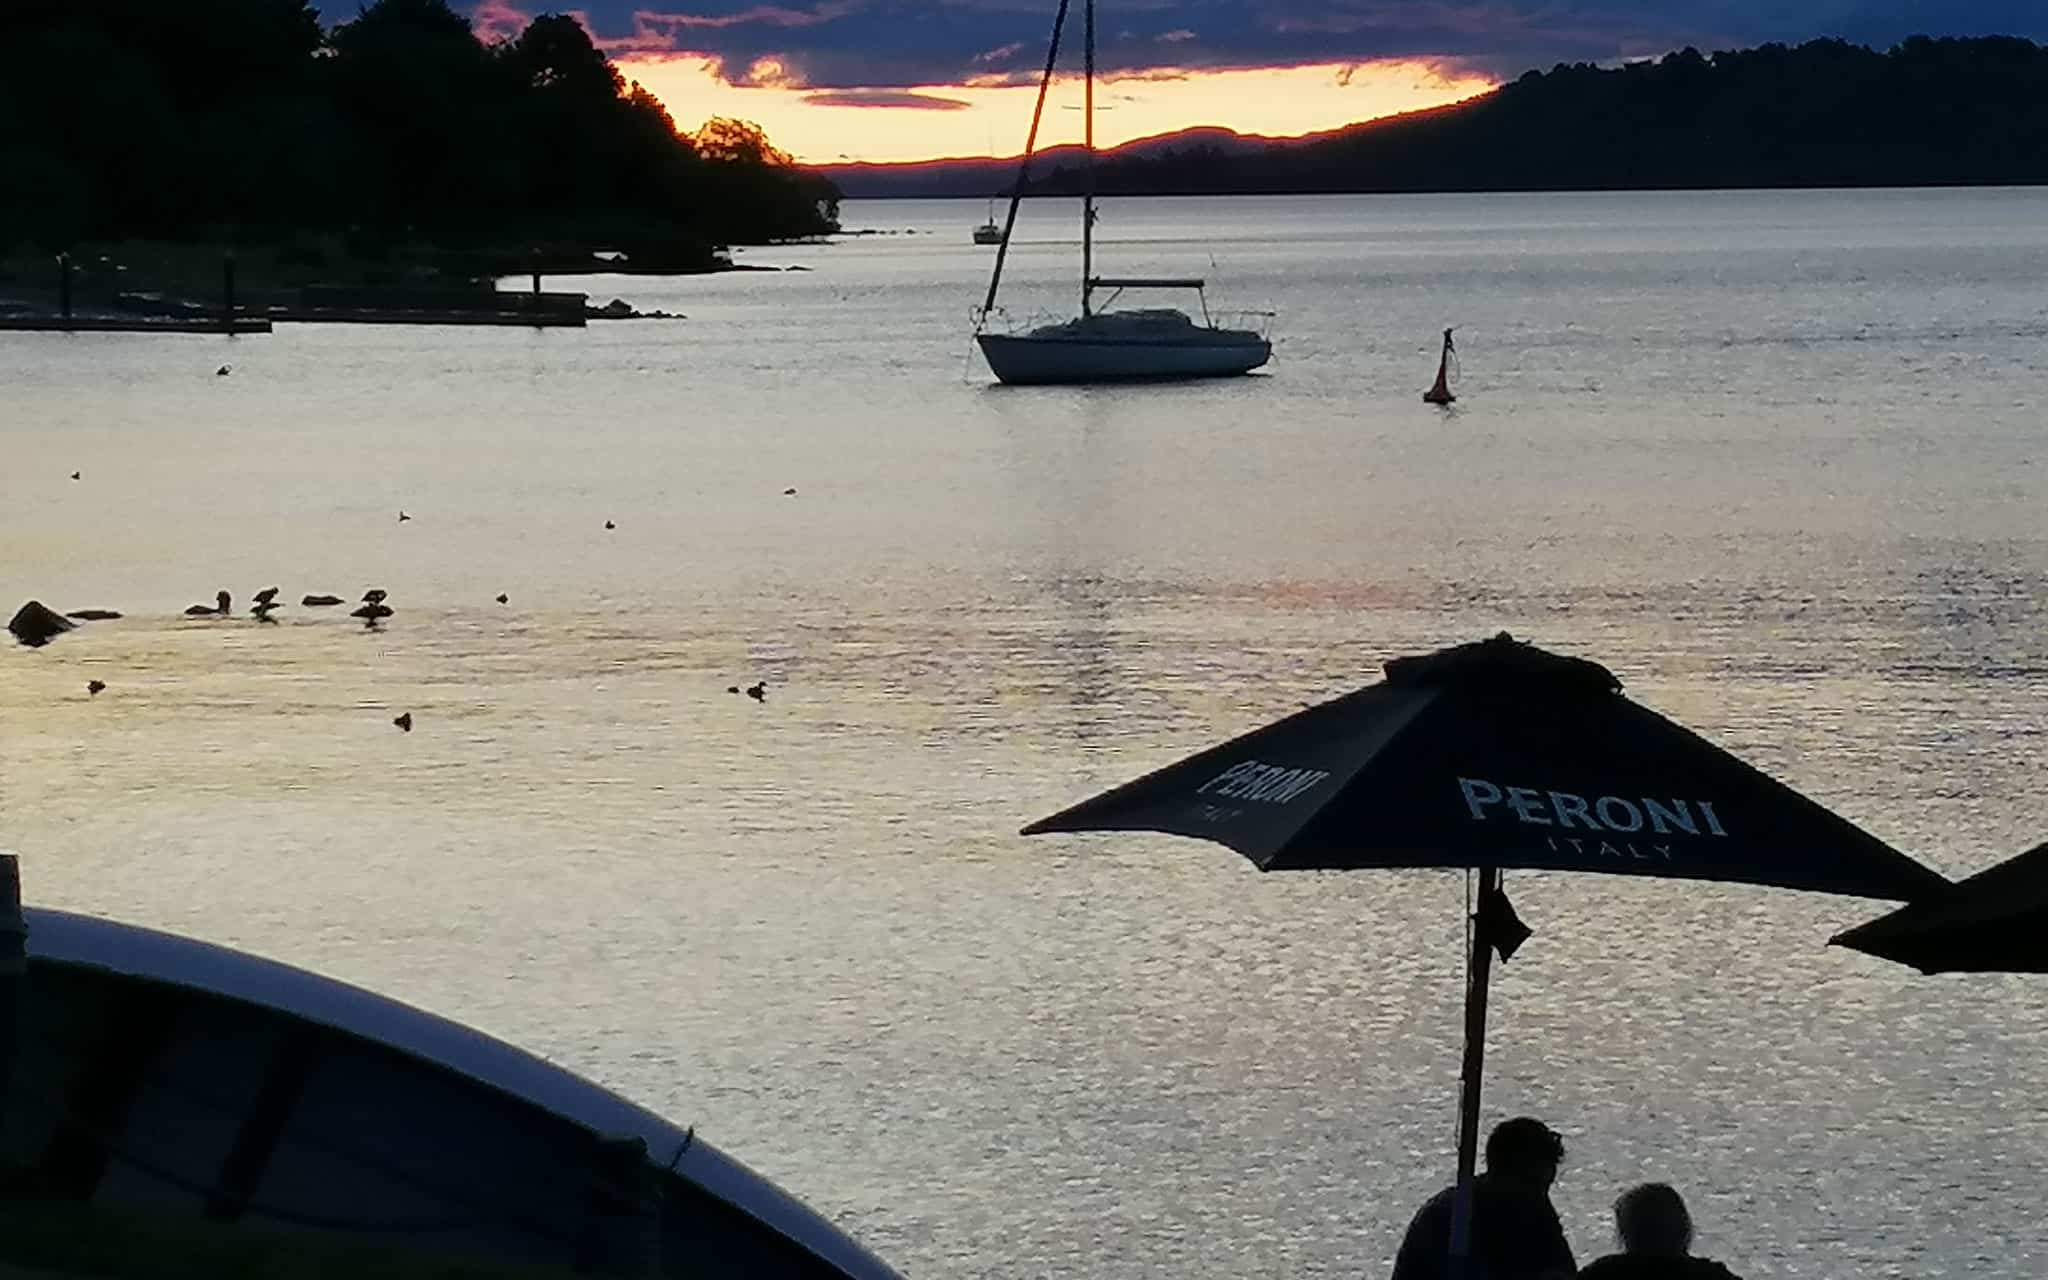 Stay-in-Taupo-Accommodation-Bed-and-Breakfast-in-Taupo-Waikato-New-Zealand-15